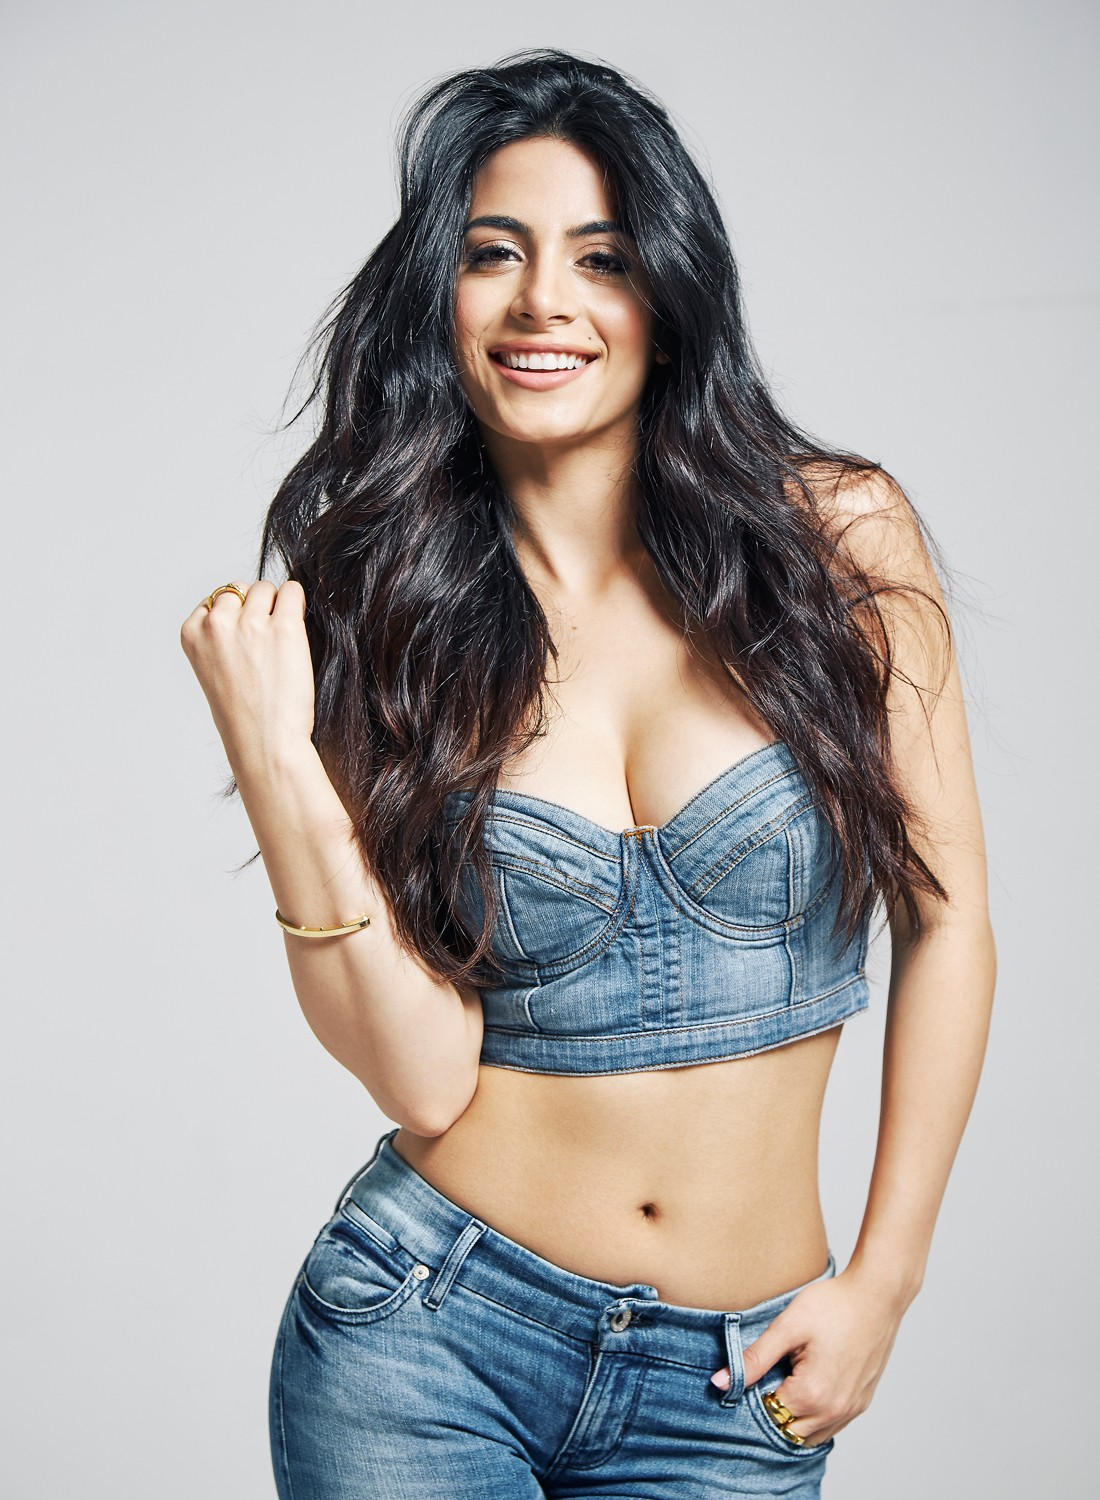 Sexy Emeraude Toubia Photos Collection - Sexy Actress Pictures | Hot Actress Pictures - ActressSnaps.com